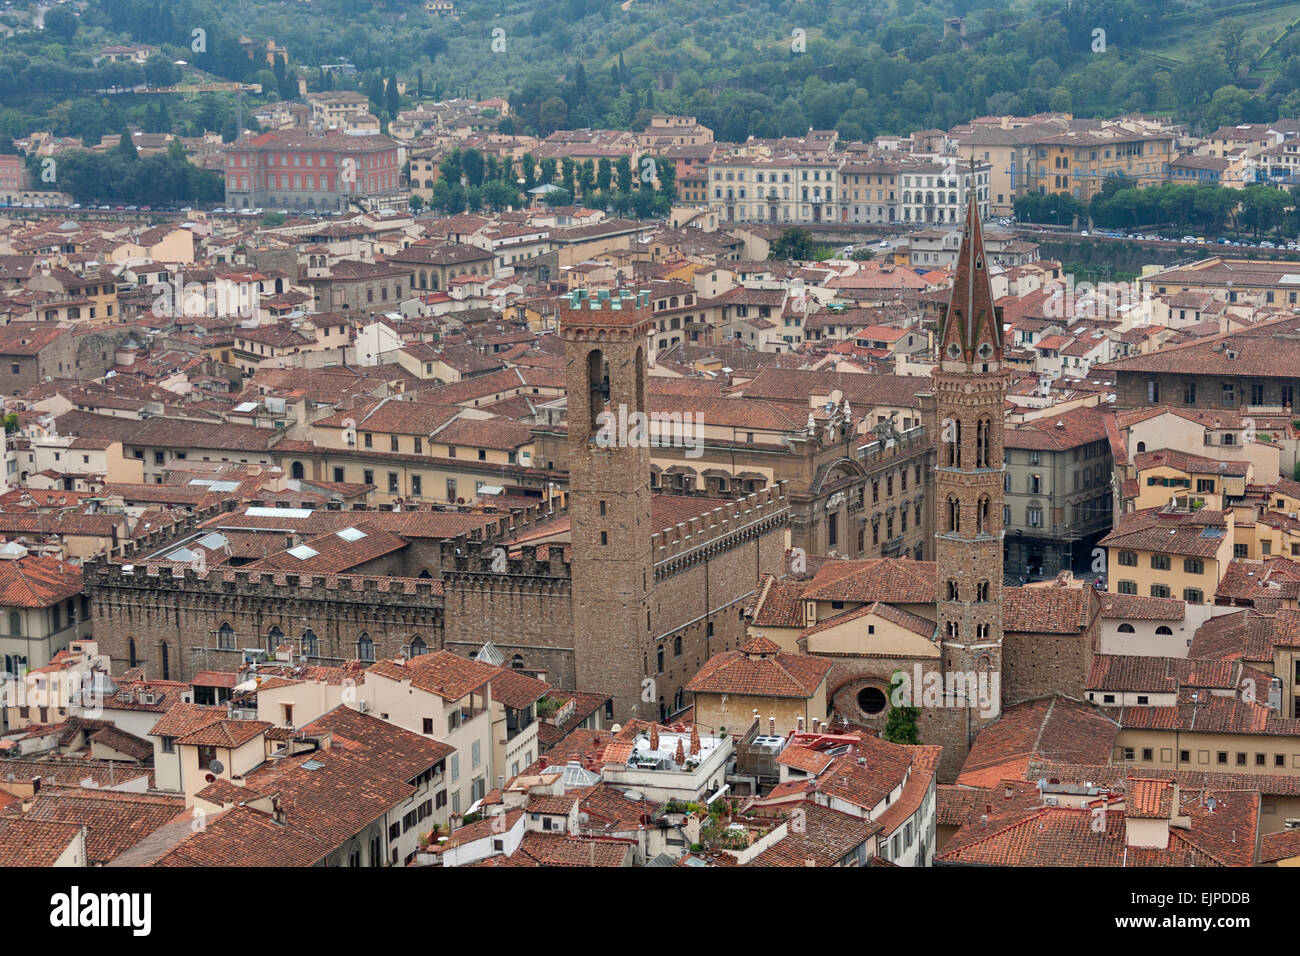 Florence cityscape with Badia Fiorentina and Palazzo del Bargello in the fog. Aerial view. Italy. Stock Photo